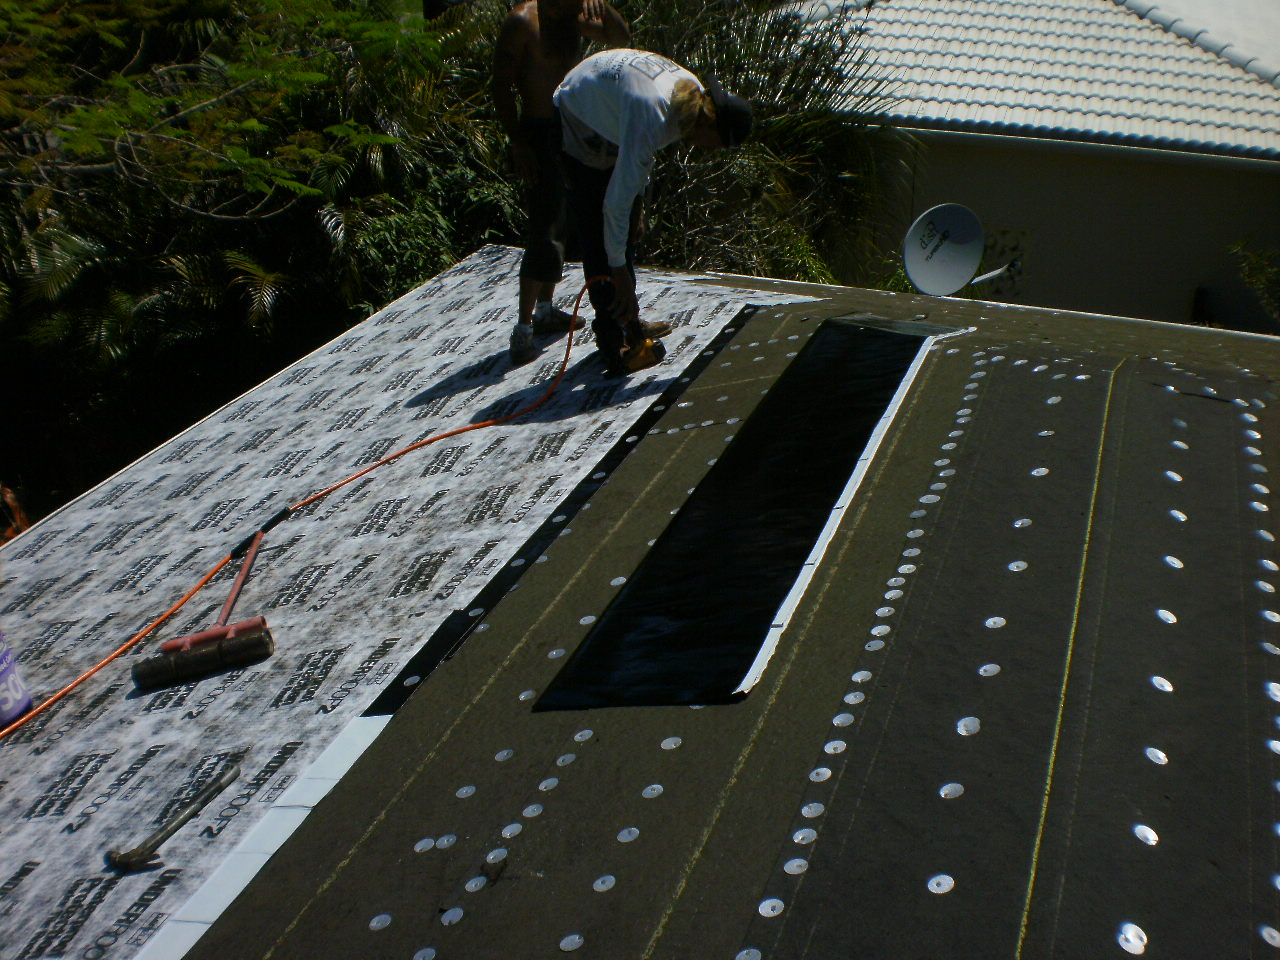 Roofing Felt Installation : Roofer mike says miami roofing concrete tile roof